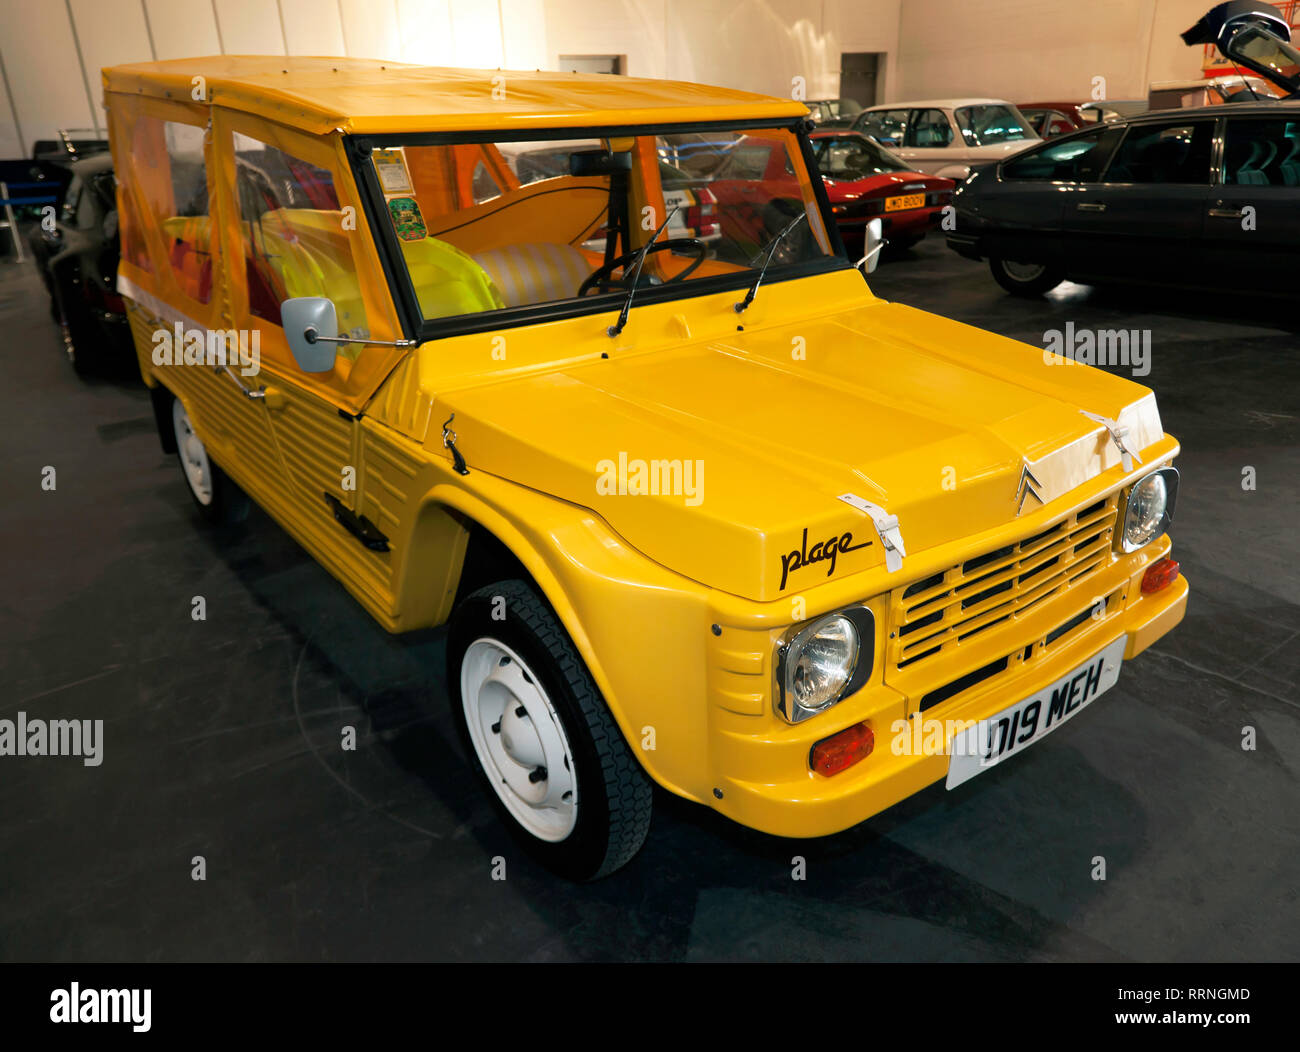 Three-quarters front view of a 1987 Citroën Méhari Plage, on display in the Paddock area of the 2019 London Classic Car Show - Stock Image